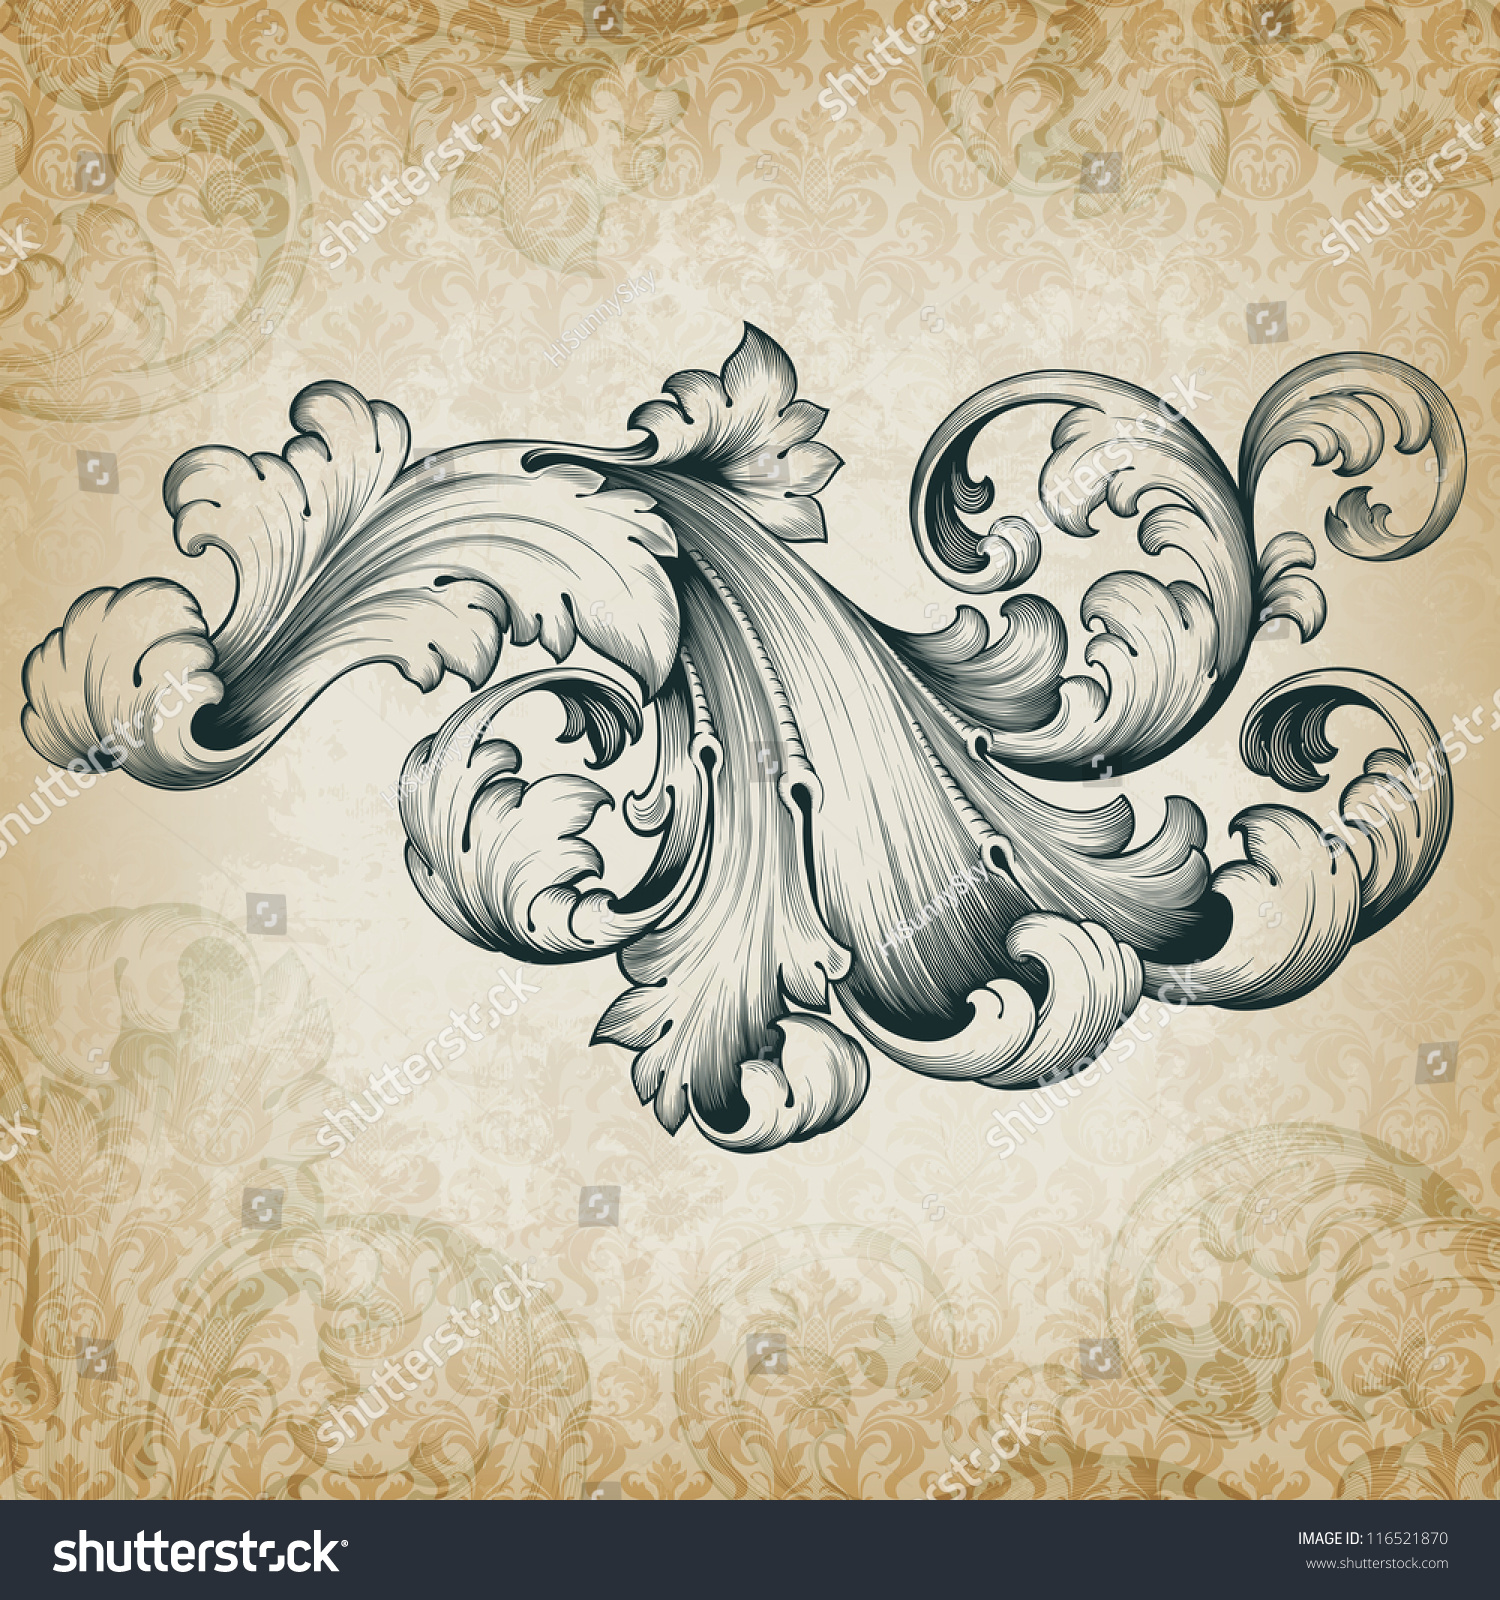 Antique Scroll Patterns: Vector Vintage Baroque Engraving Floral Scroll Filigree